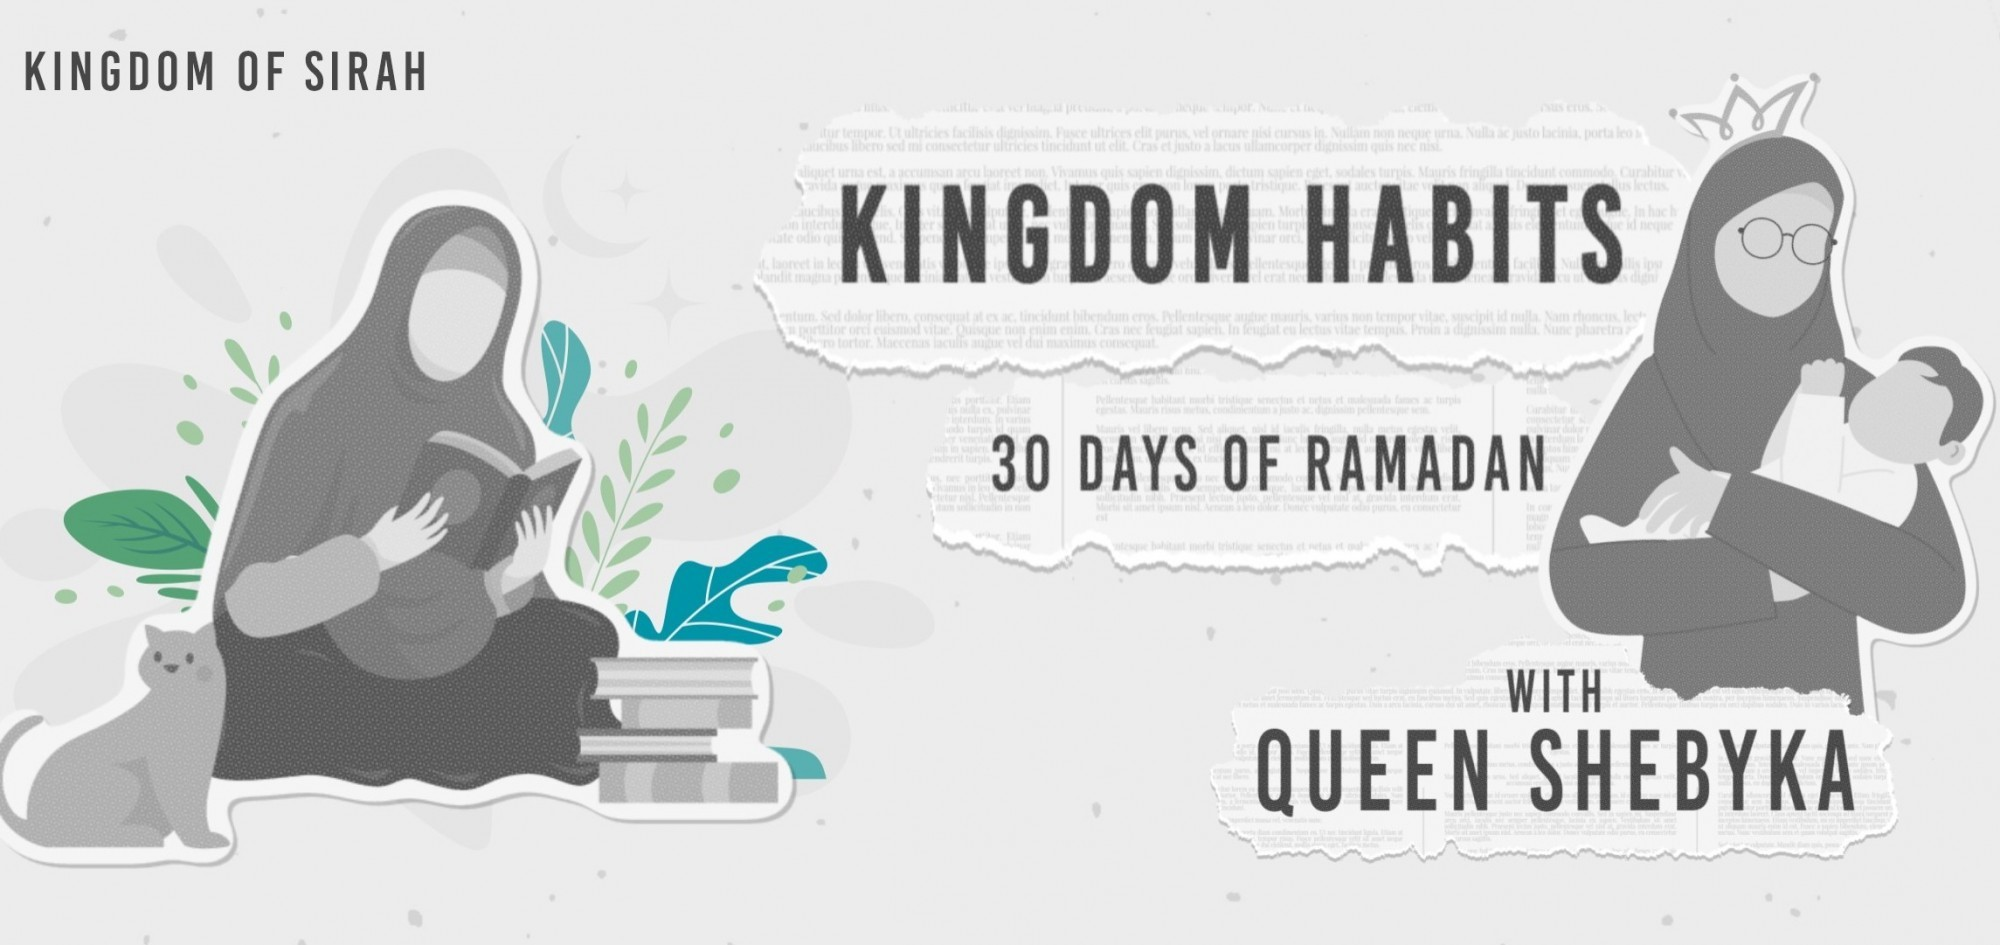 KINGDOM HABITS